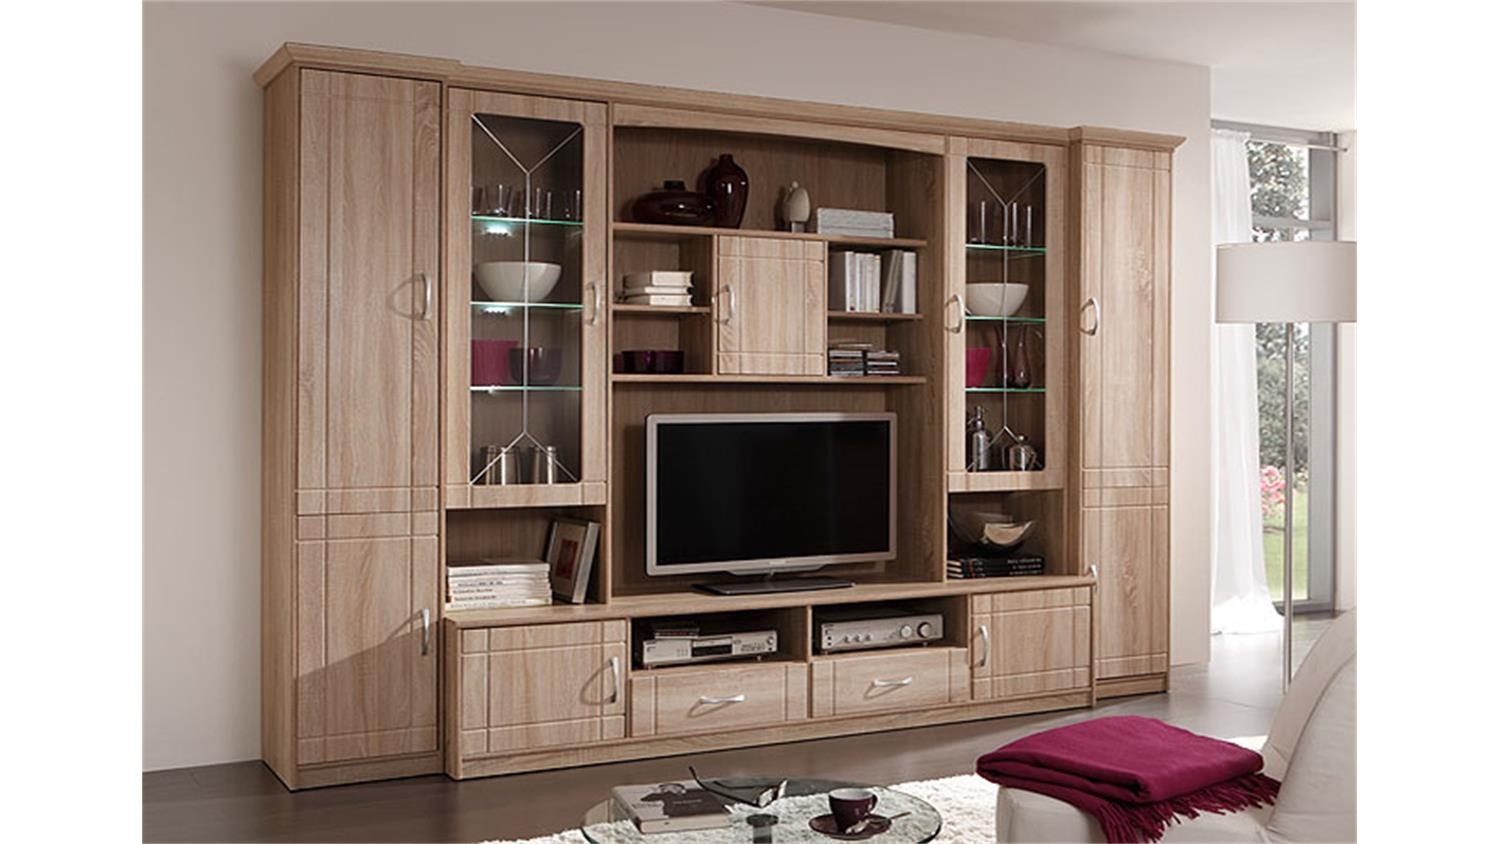 village 4 wohnwand bestseller shop f r m bel und einrichtungen. Black Bedroom Furniture Sets. Home Design Ideas